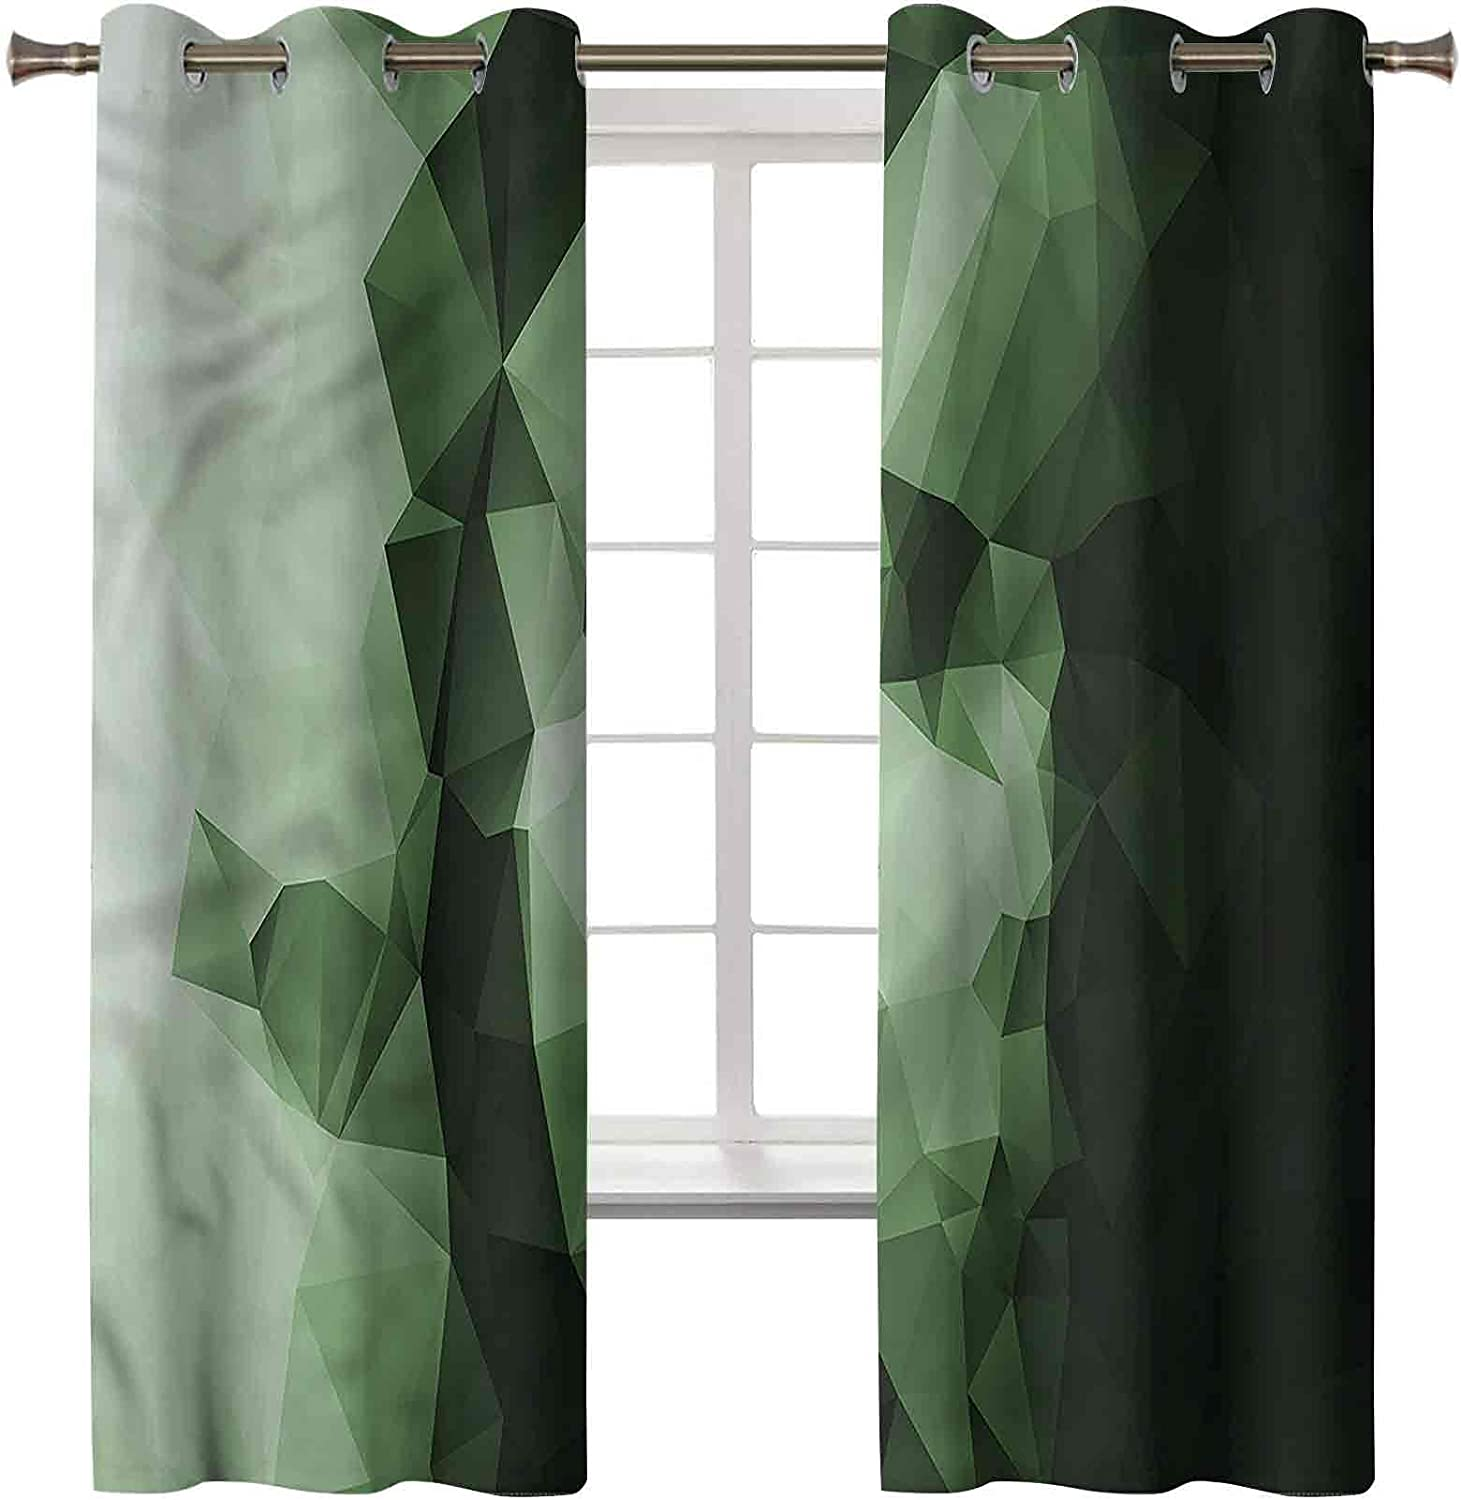 sold out Blackout Window Curtain Treatment Thermal In stock Geom Insulated